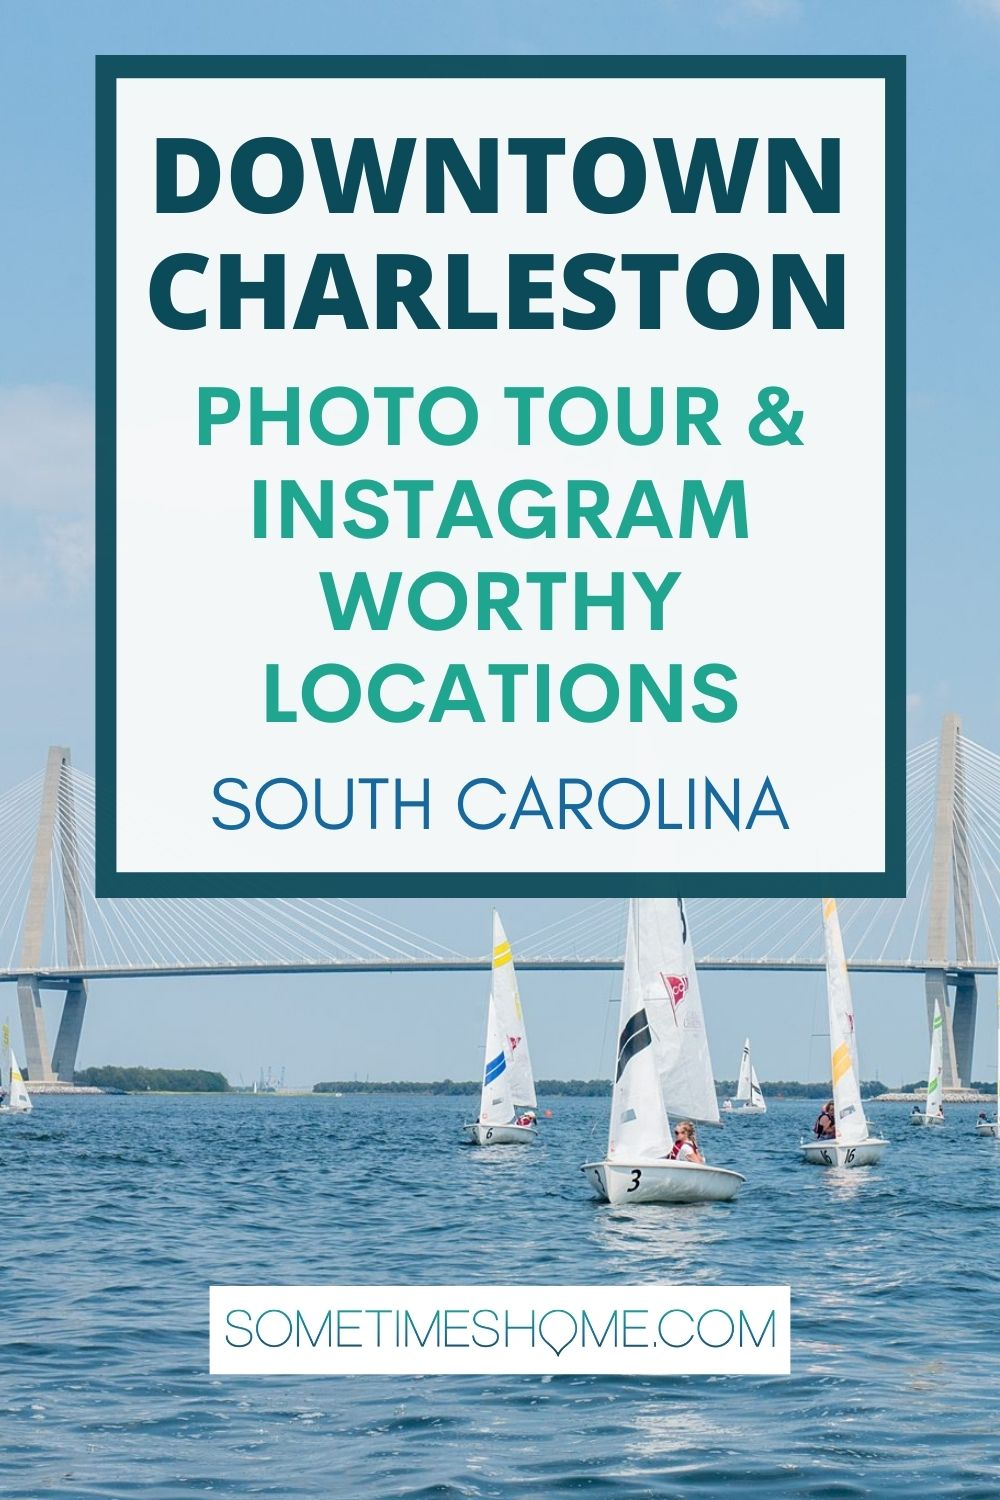 Downtown Charleston walkable photo tour and Instagram-worthy locations in South Carolina with a picture of sailboats in the river by Ravenal Bridge.